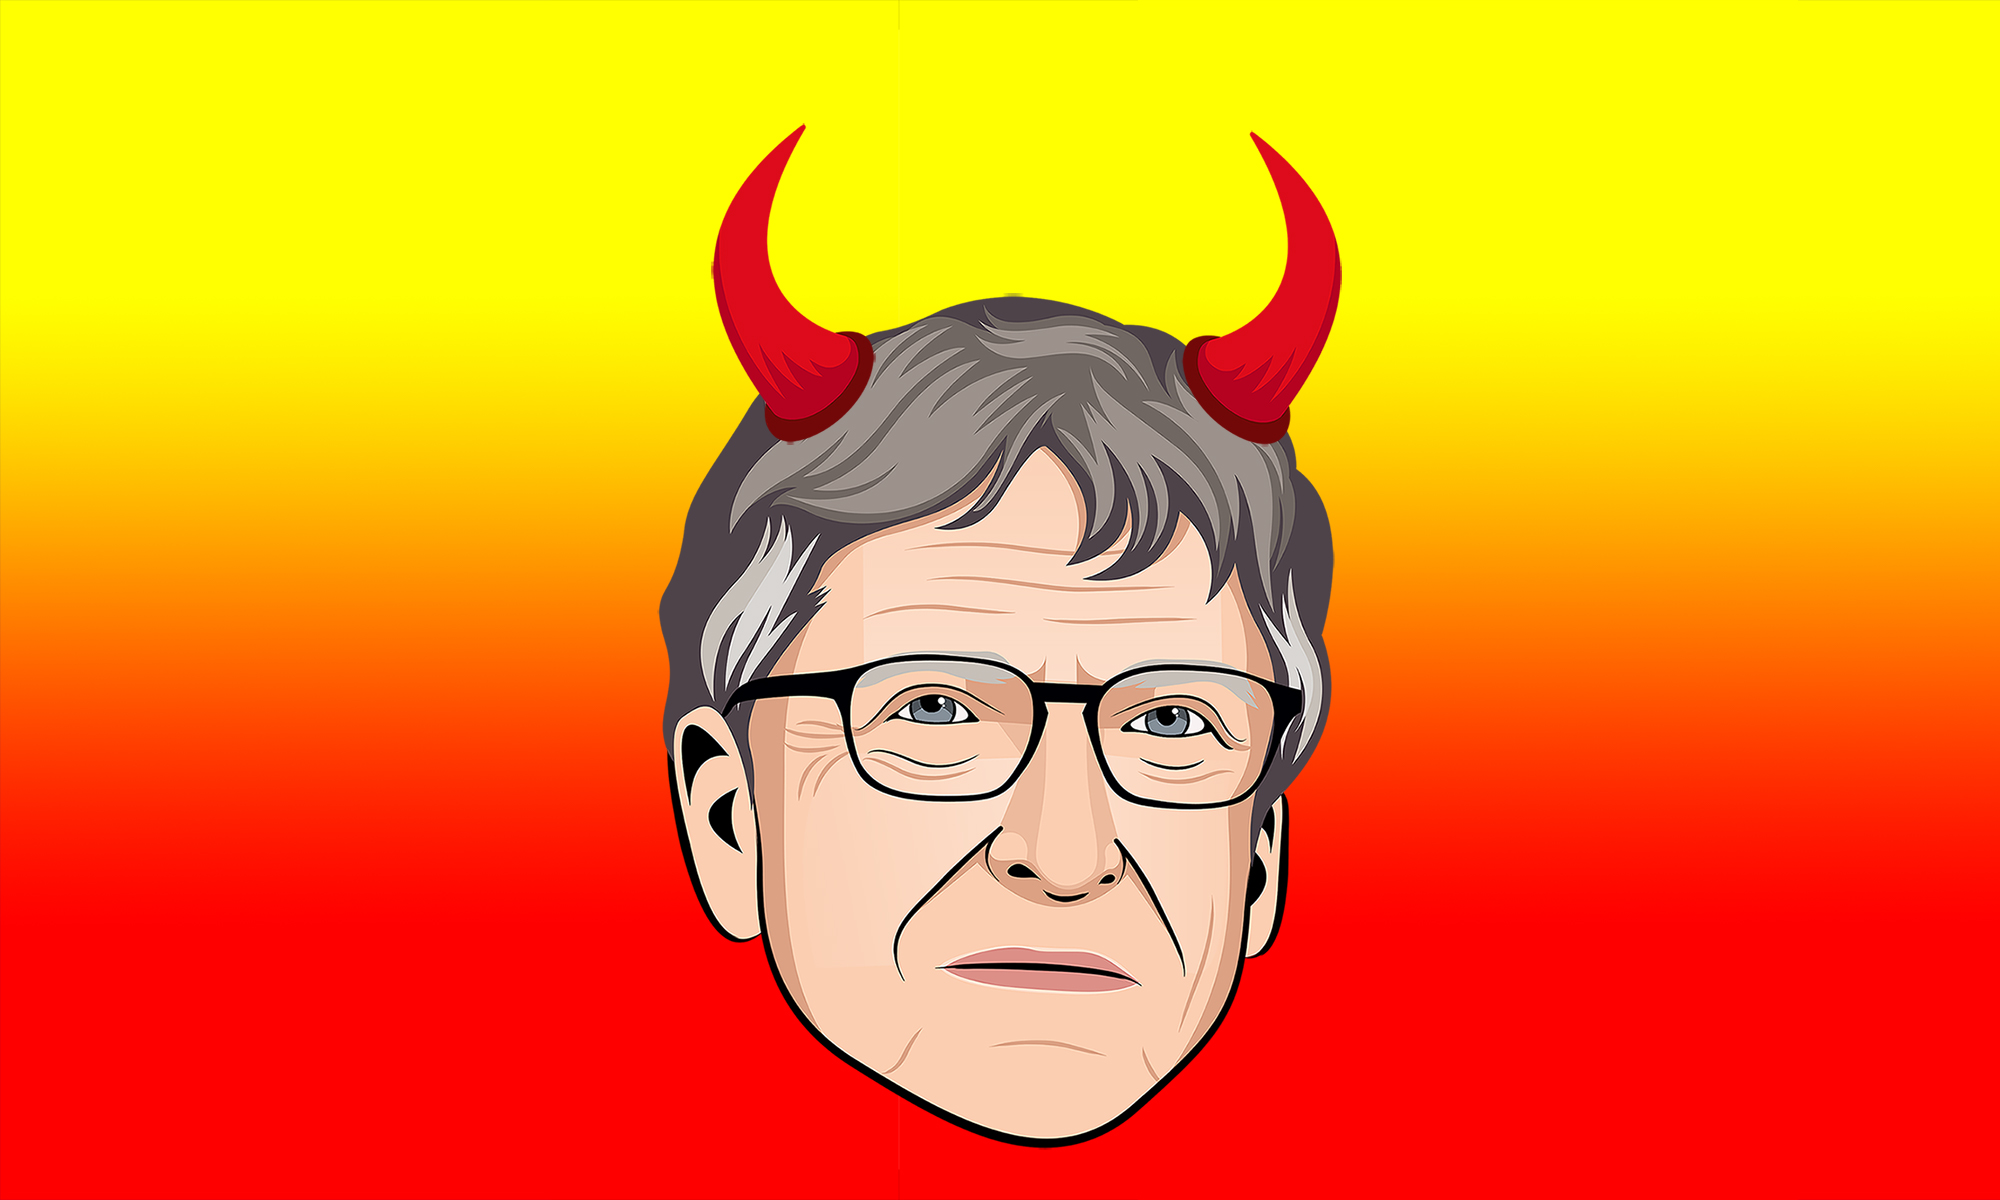 St. Bill Gates